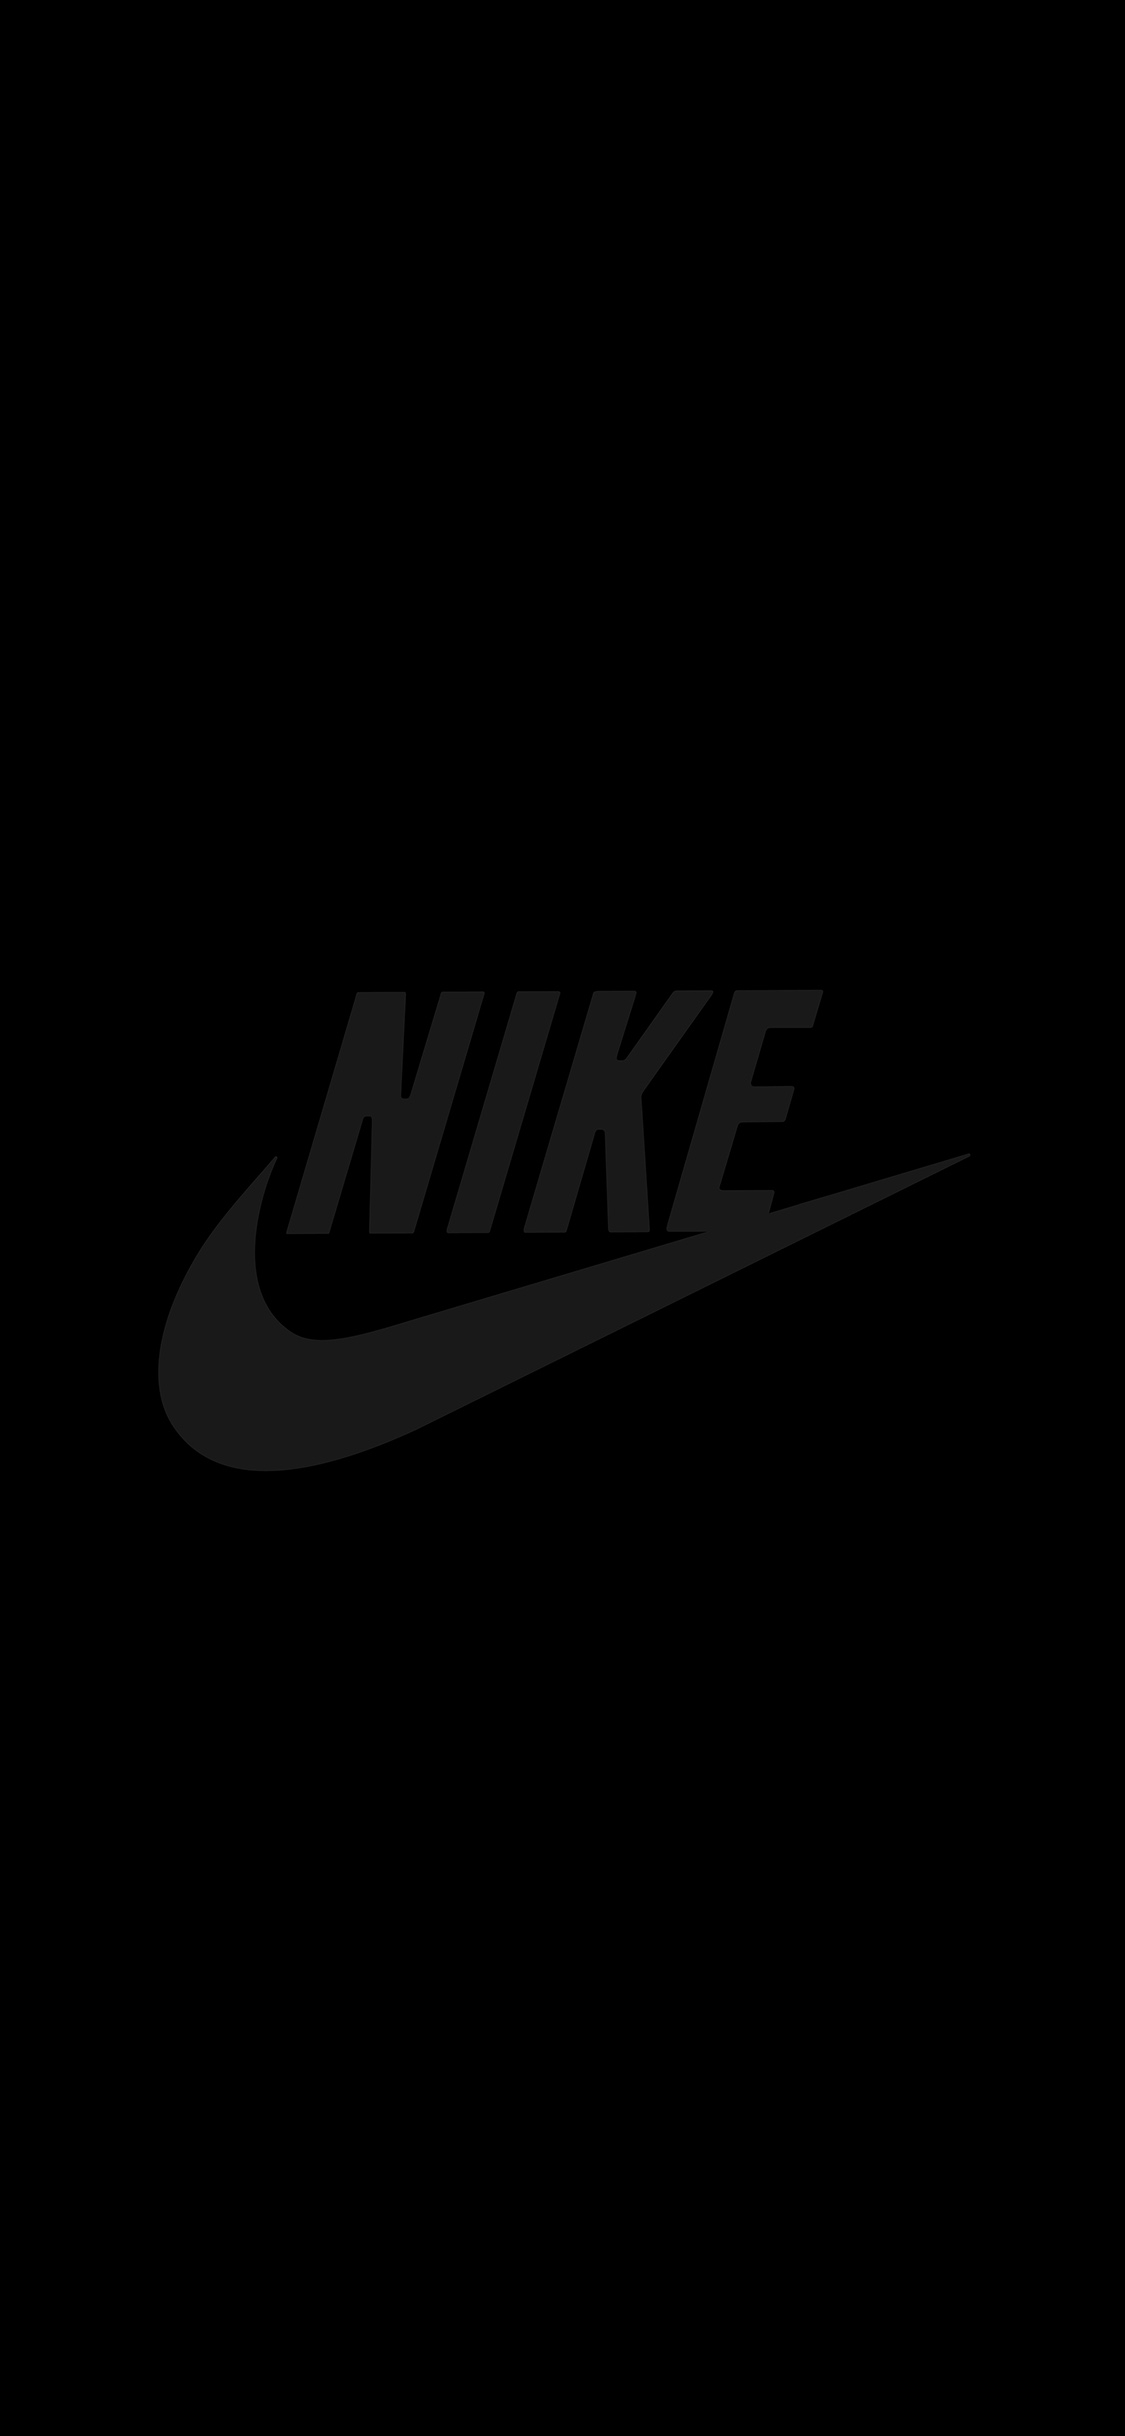 Nike Wallpaper For Iphone X Larmoric Com